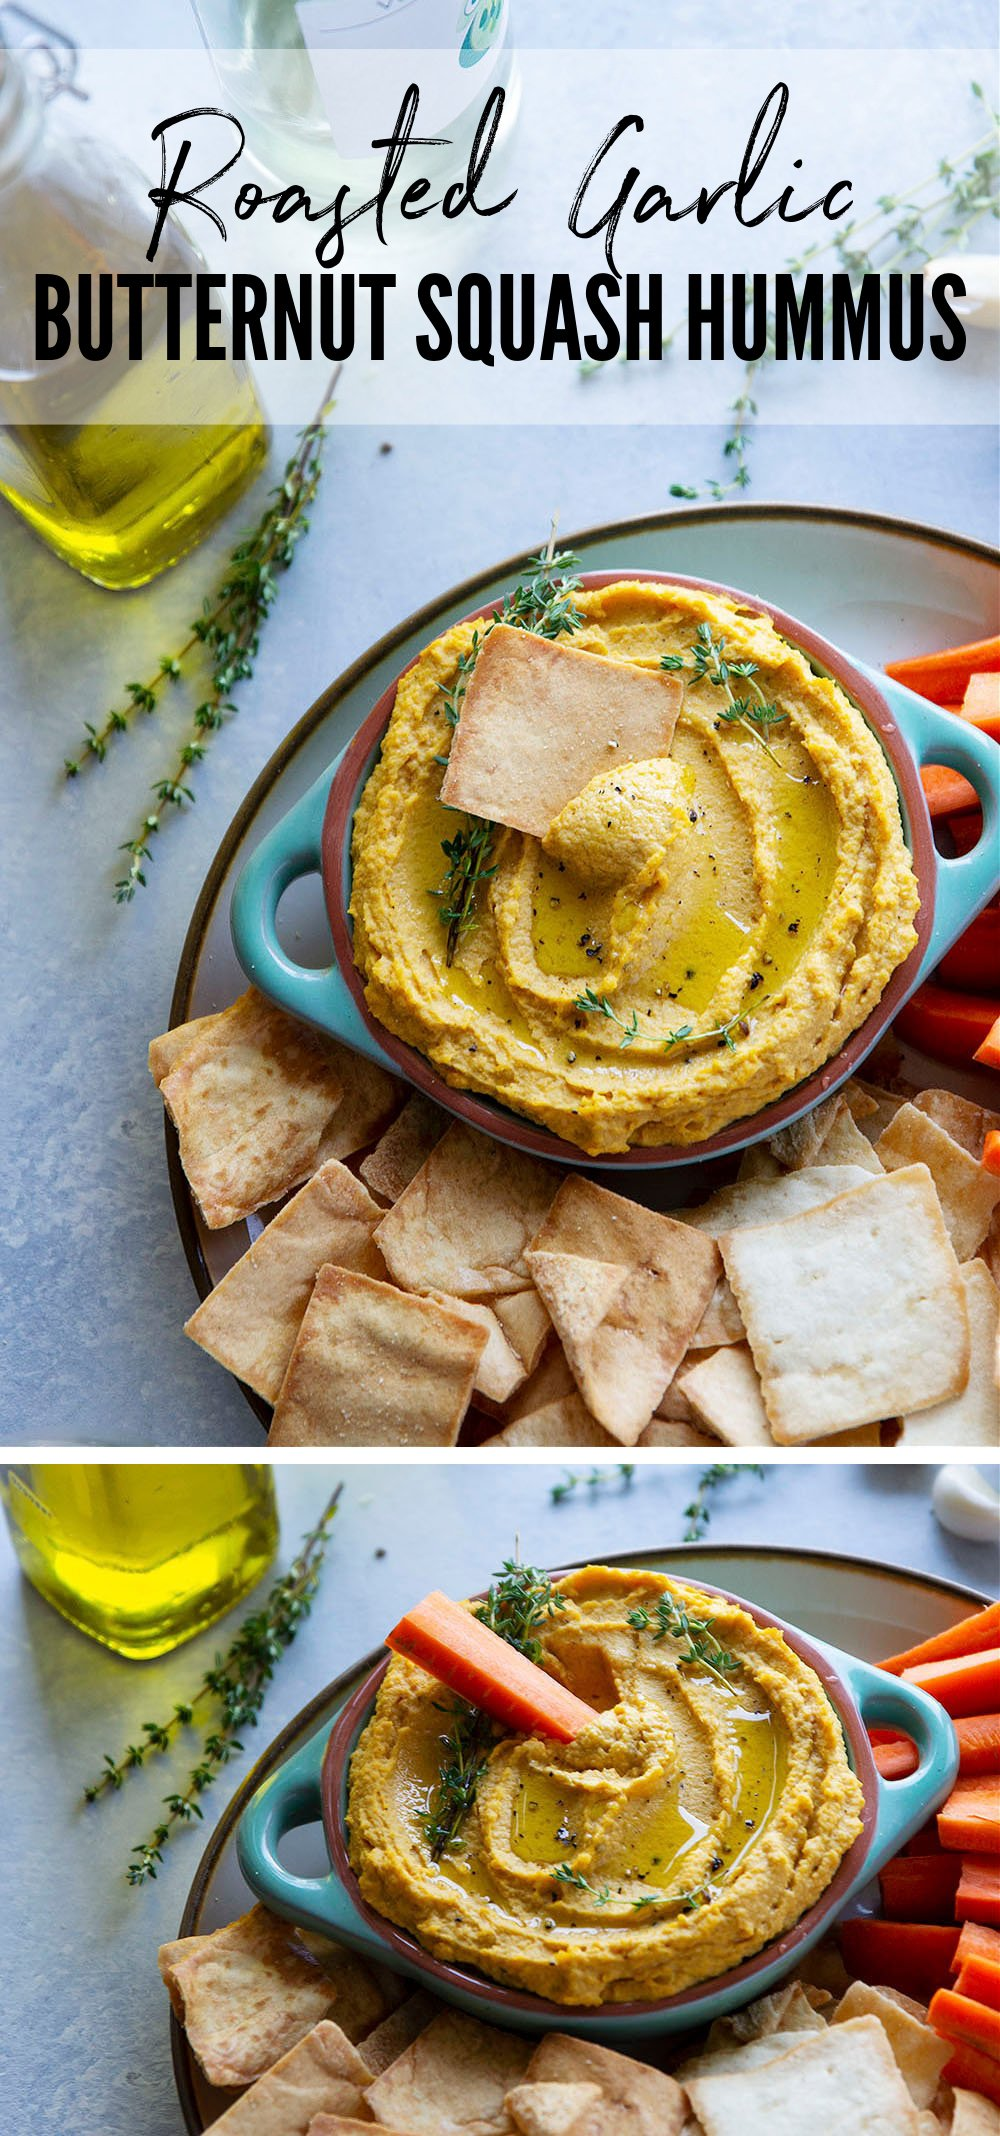 Flavorful roasted garlic and butternut squash gives this butternut squash hummus an unmatchable silky texture that you won't be able to keep those pita chips out of!